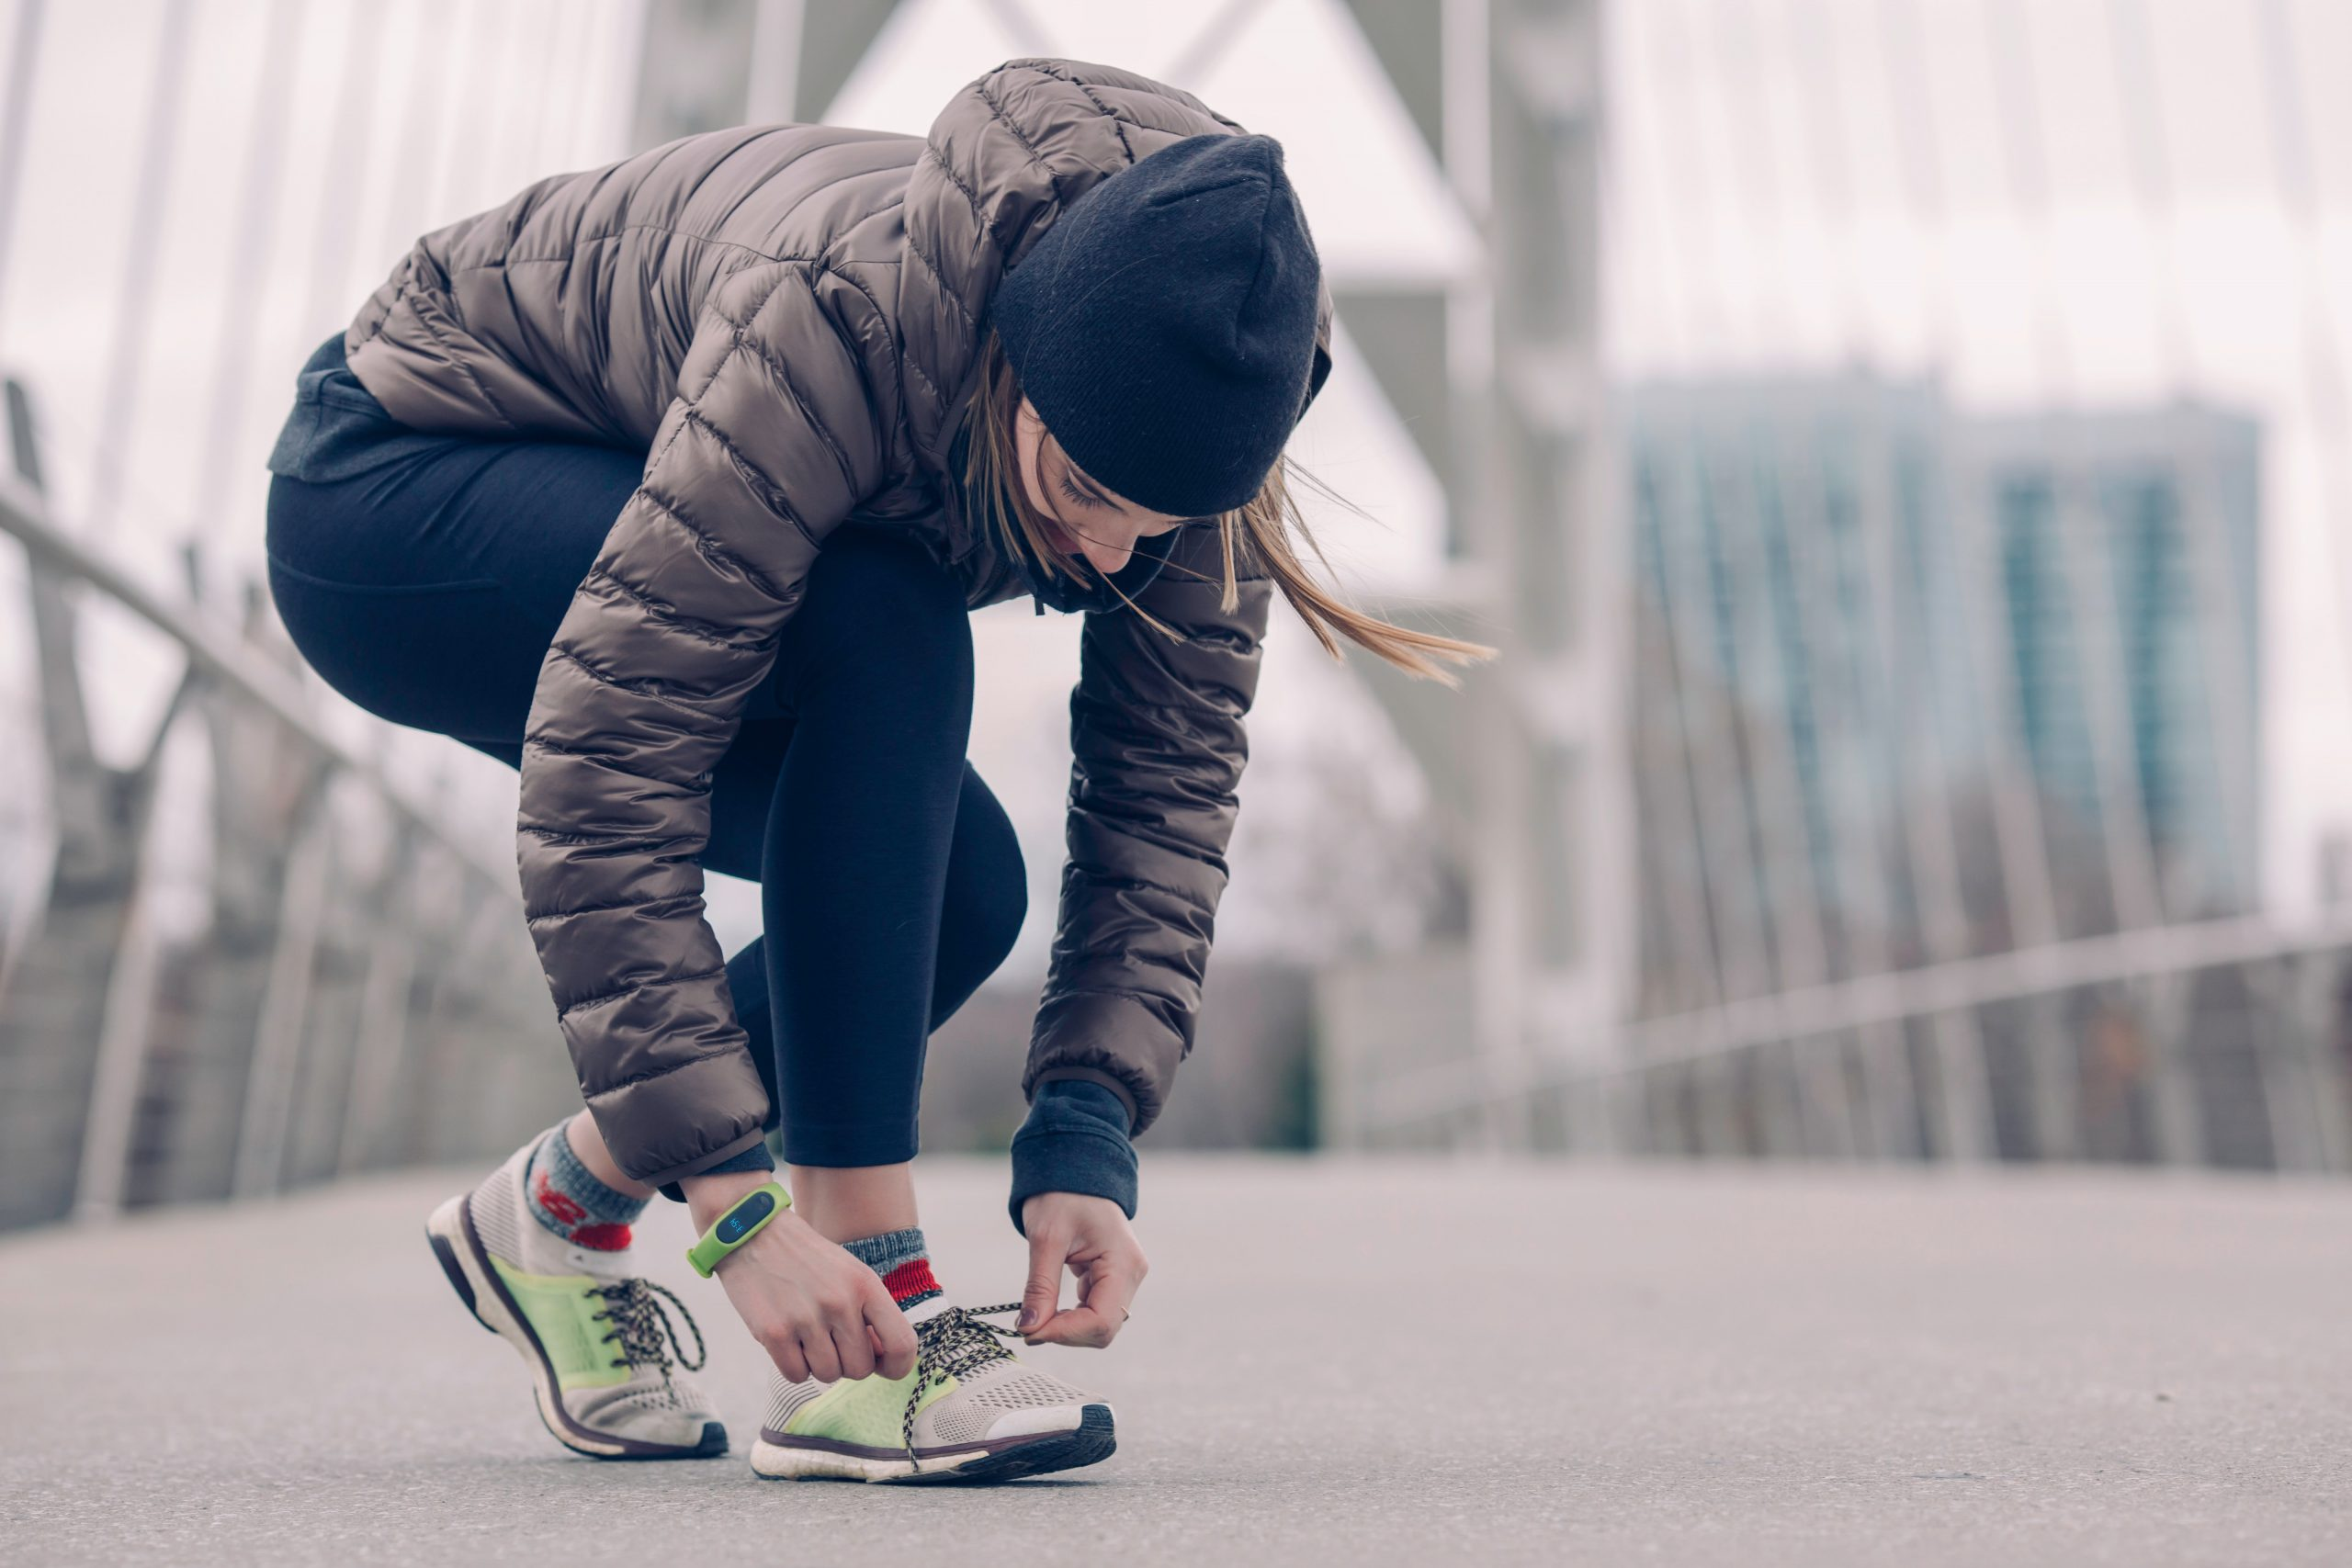 Woman tying shoe to exercise; tips for healthy weight management.